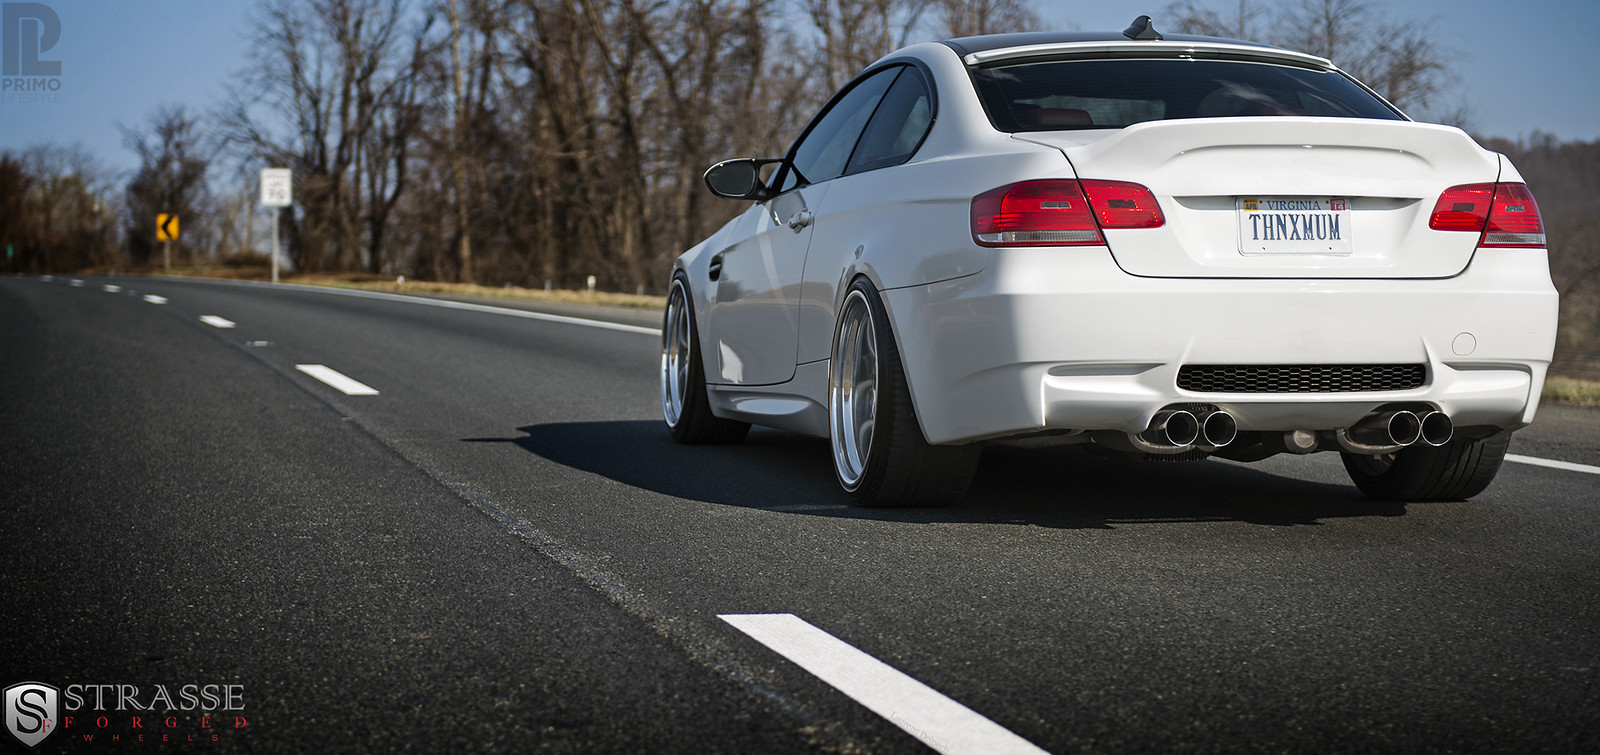 My E92 stanced on Strasse Forged Wheels aggressive fitment